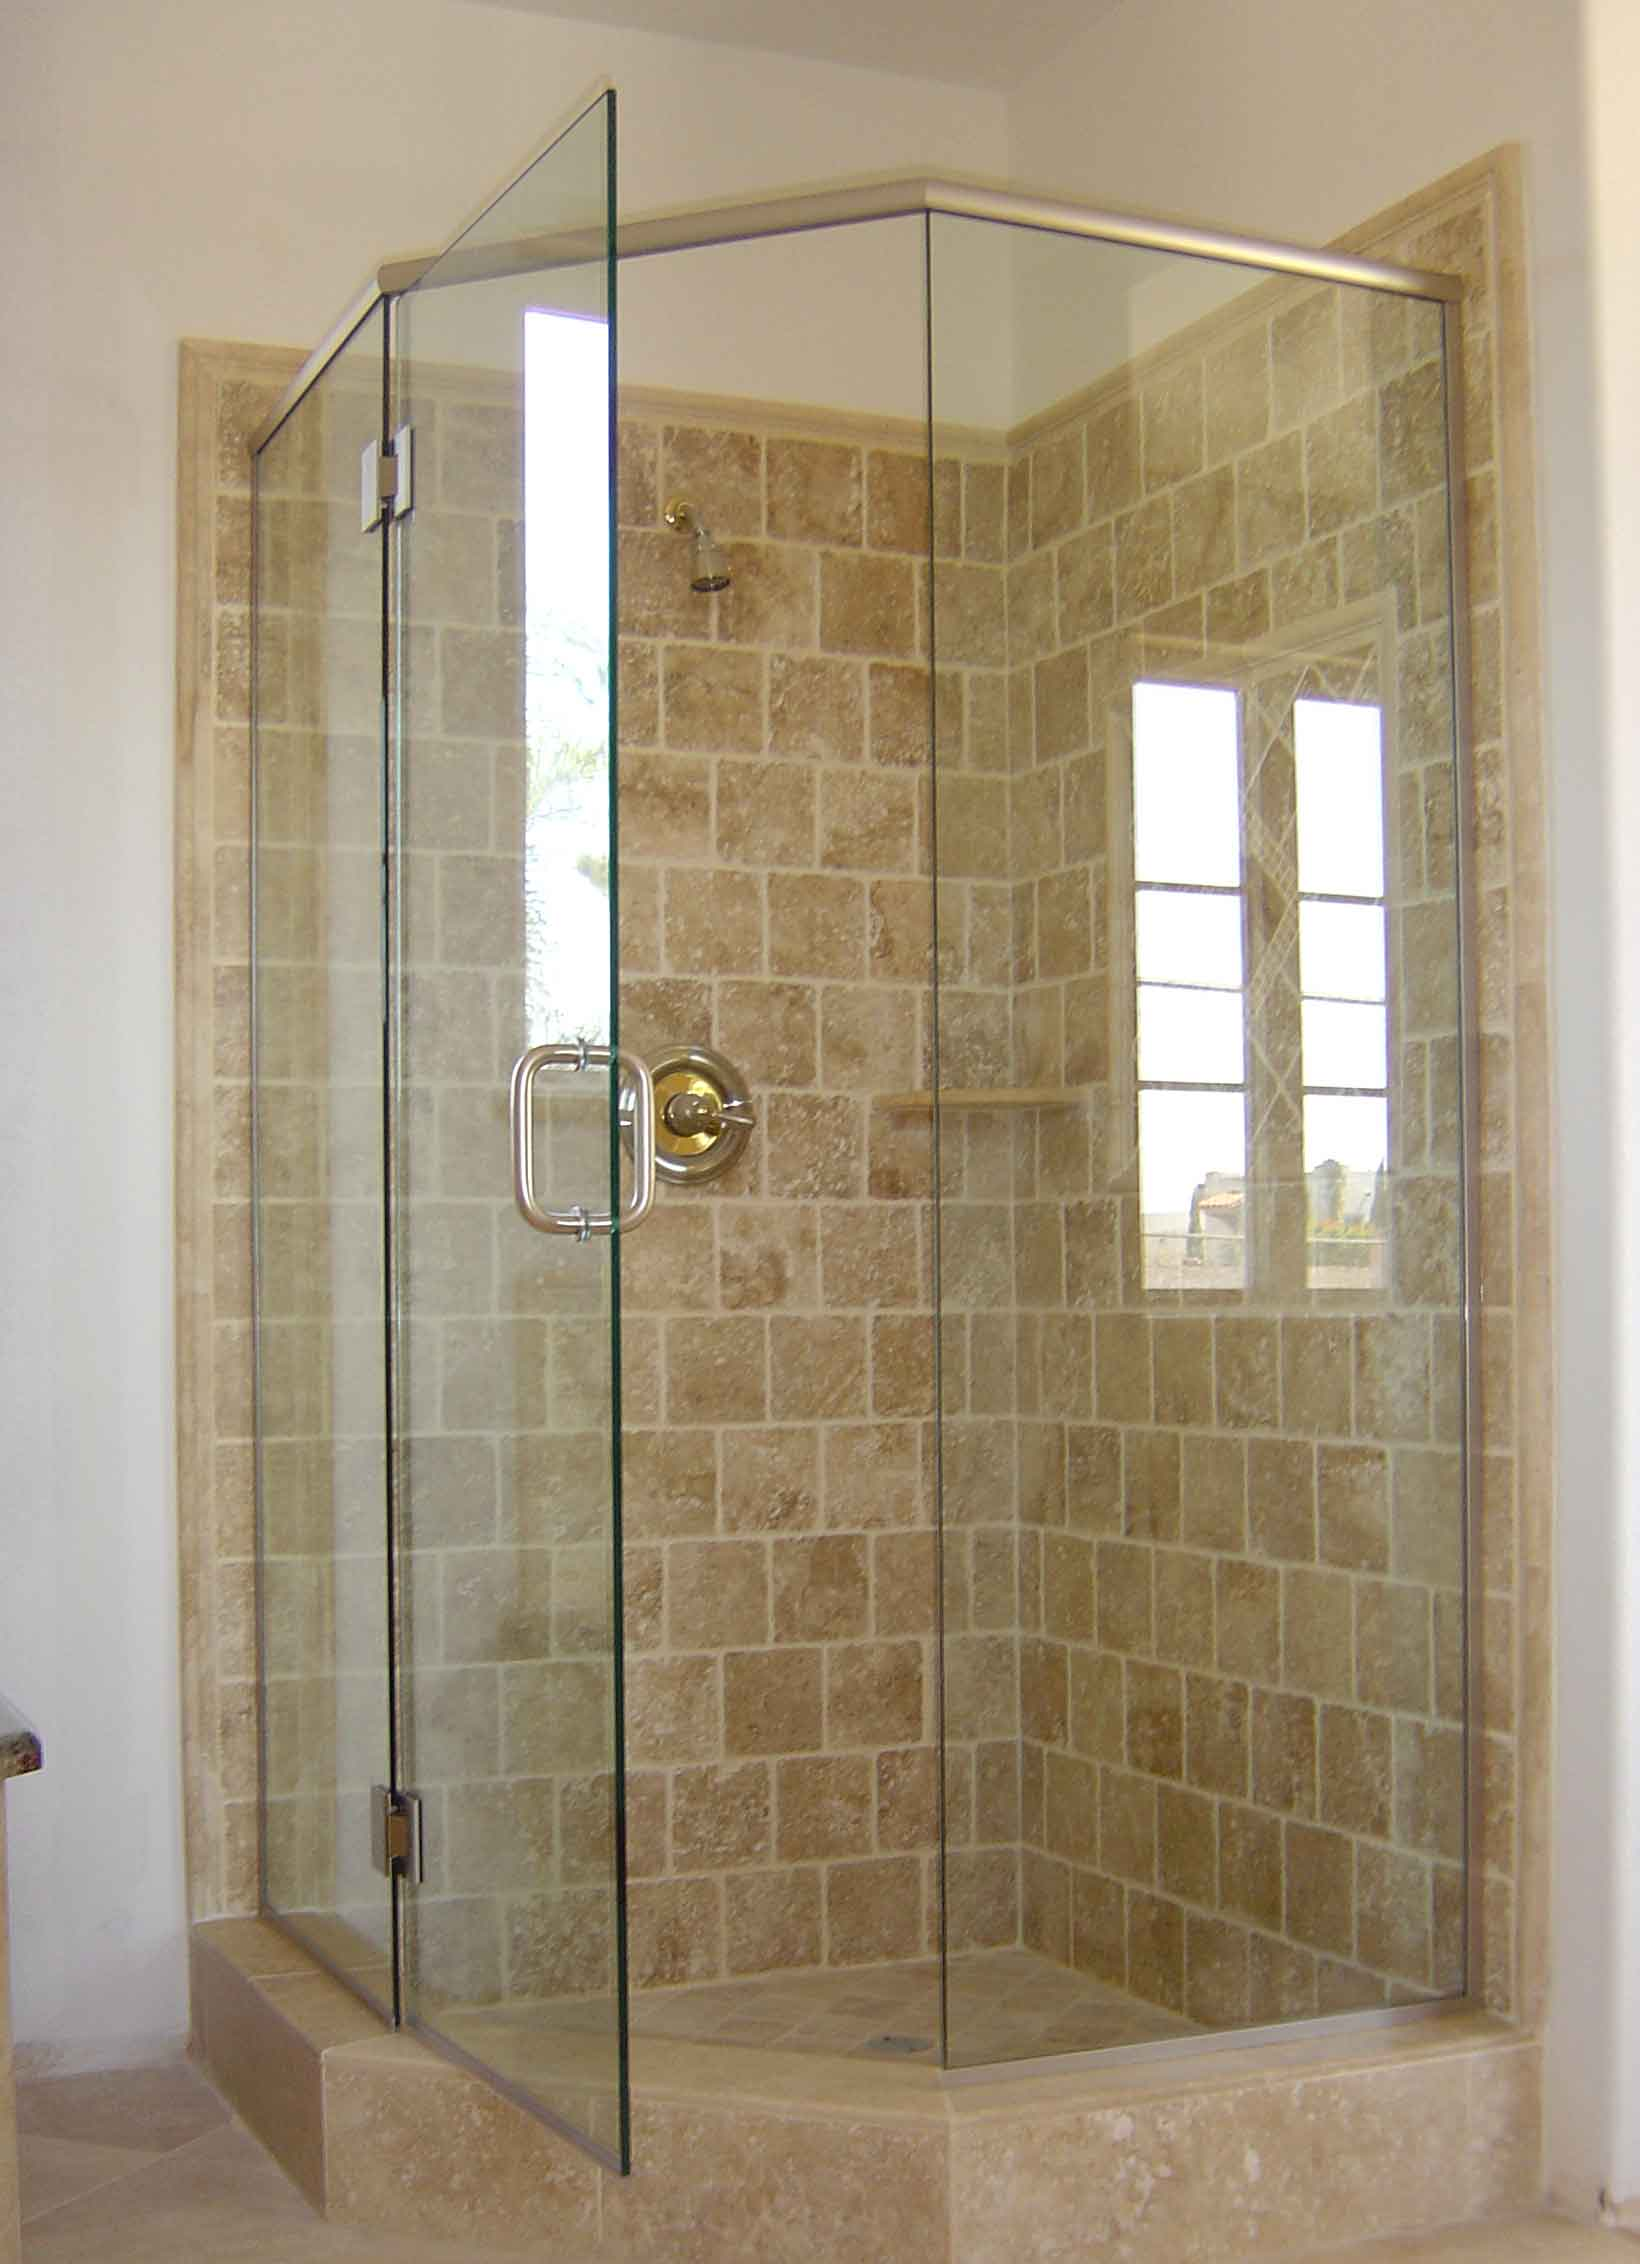 SHOWER DOOR GLASS BEST CHOICE Shower Doors Shower Enclosures Shower Sys